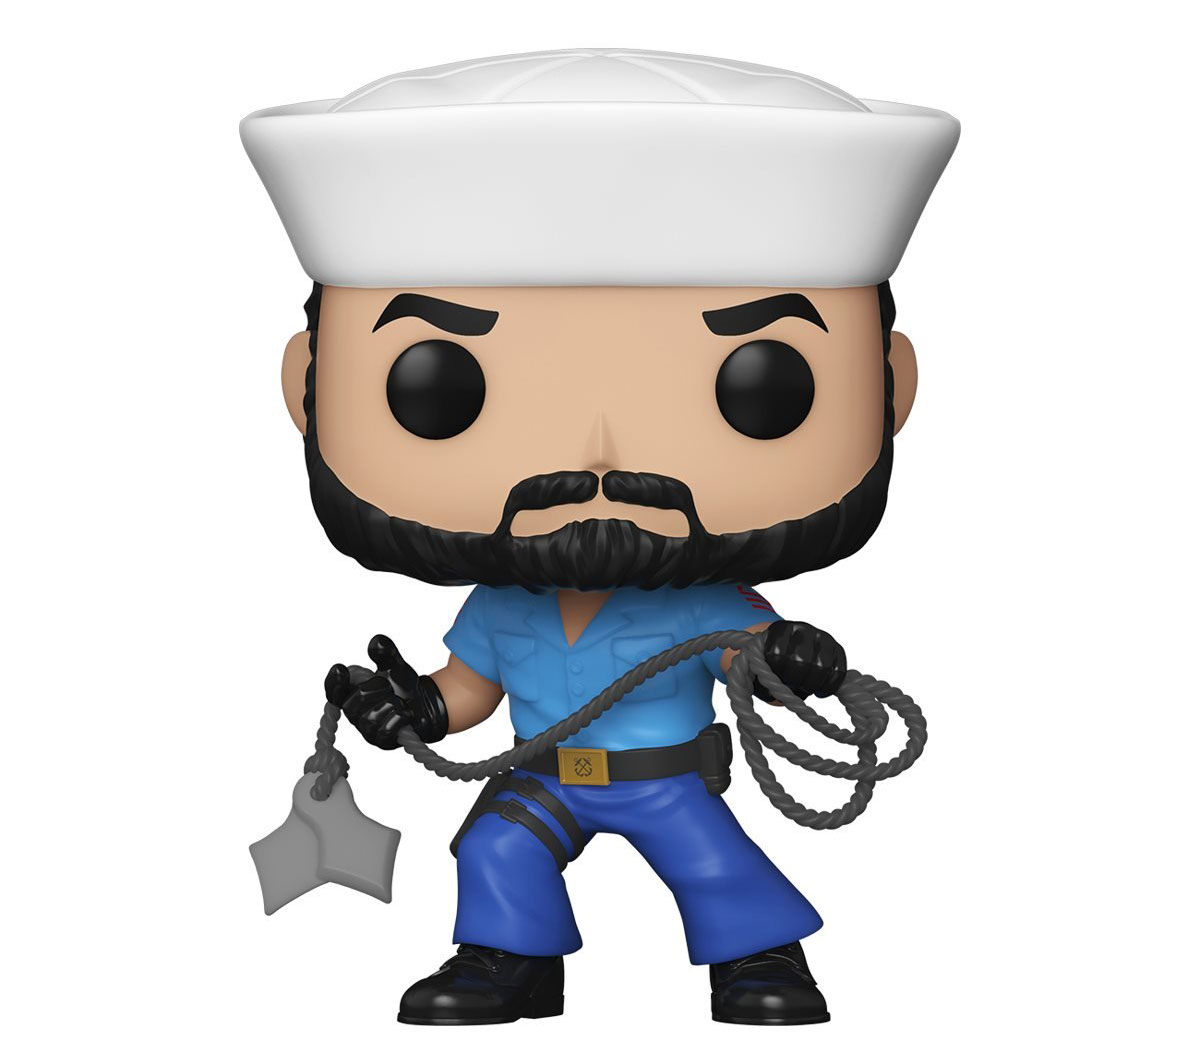 gi-joe-shipwreck-funko-pop-figure